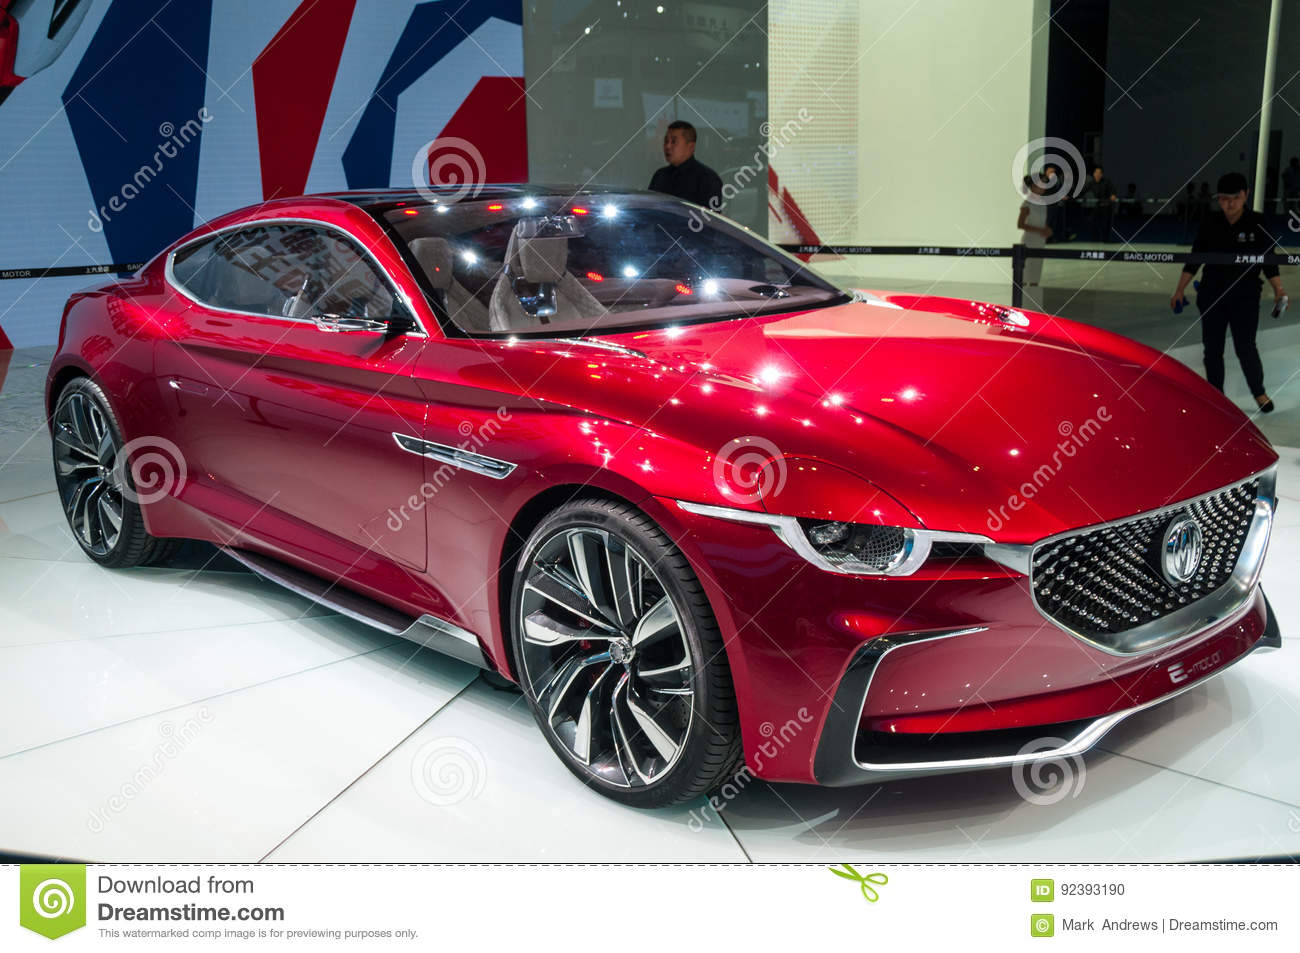 Mg e motion concept at the shanghai auto show editorial image image 92393190 - Shanghai auto show ...